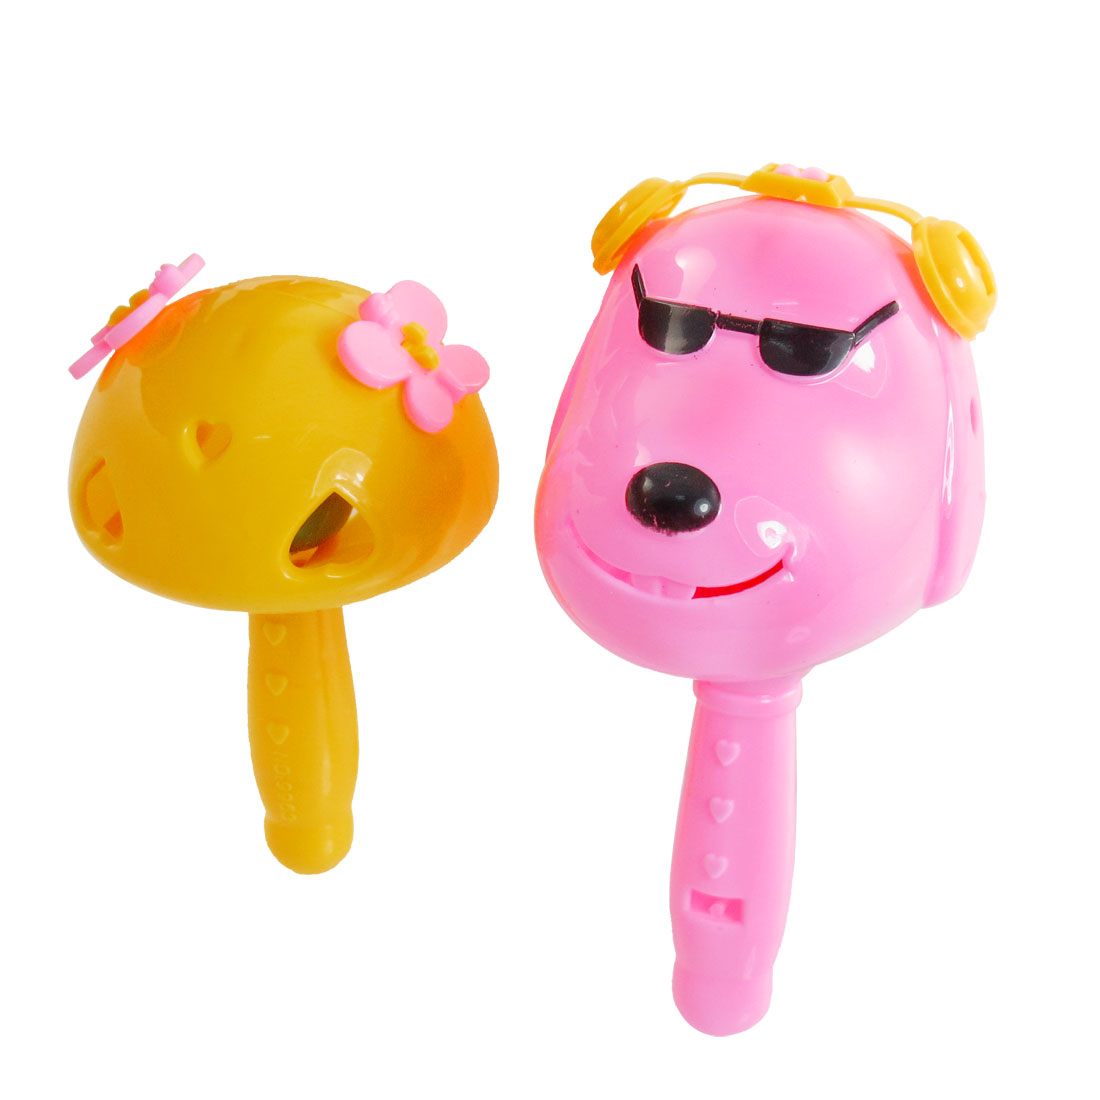 2 in 1 Plastic Yellow Mushroom Pink Dog Design Hand Shaking Bell Toy for Baby